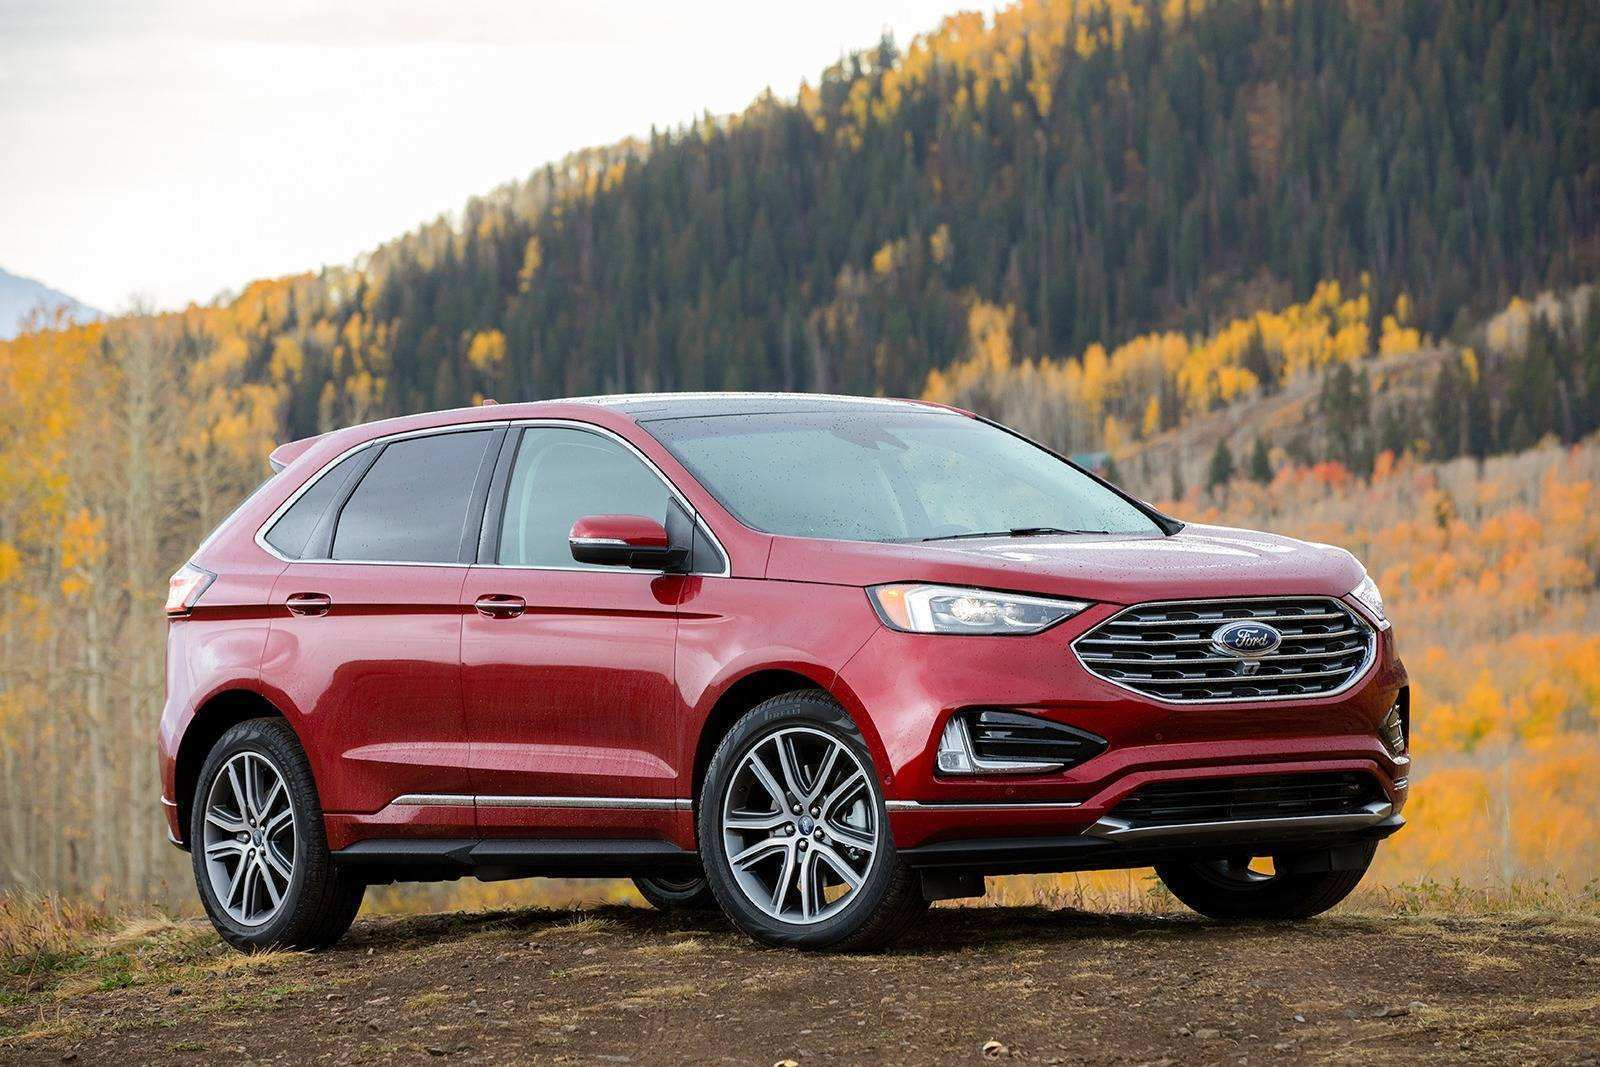 41 Concept of 2019 Ford Edge New Review for 2019 Ford Edge